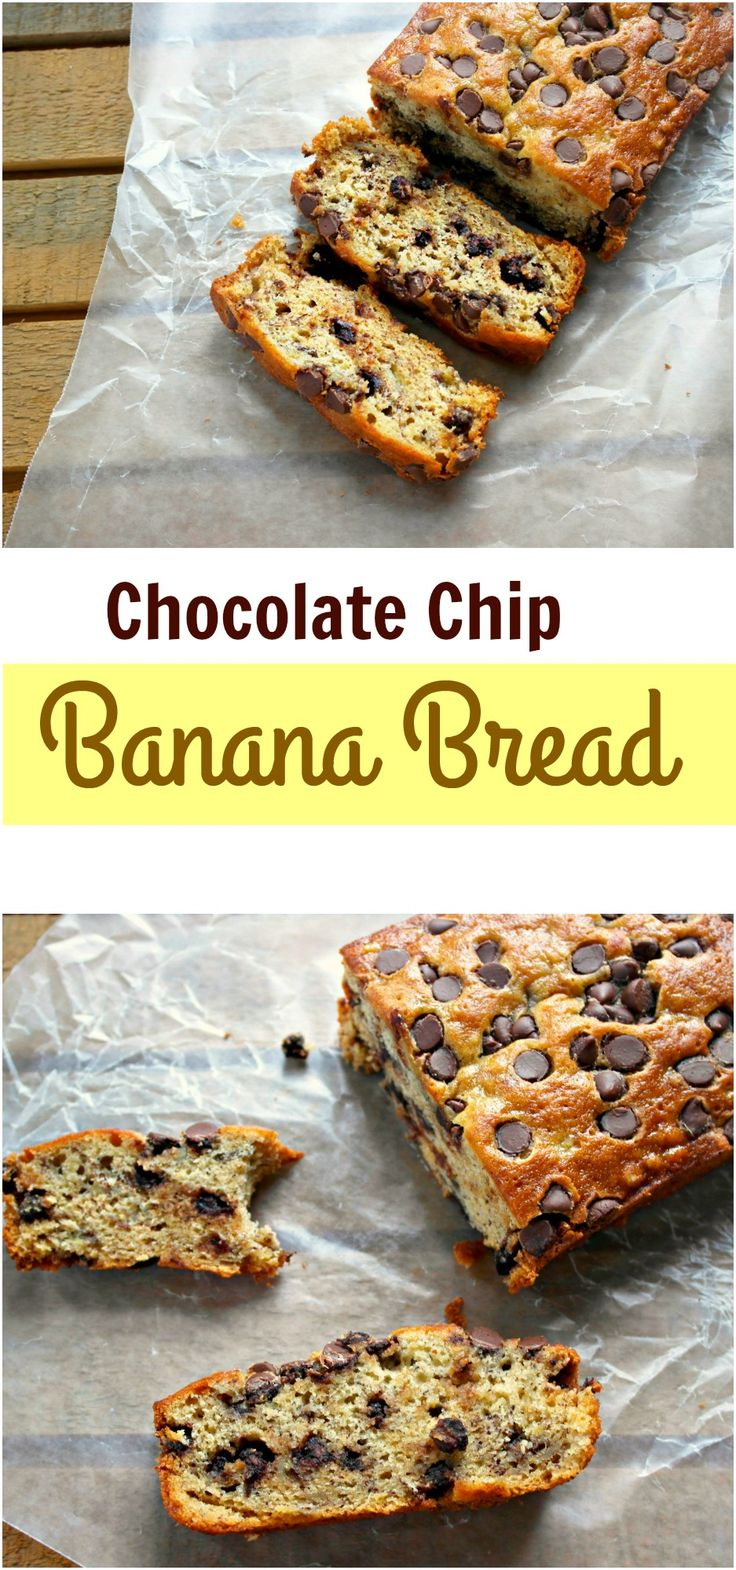 Sweetened with ripe bananas, this Chocolate Chip Banana Bread is a favorite for many who love using budget friendly ingredients to make special treats for their family. - Teaspoon Of Goodness